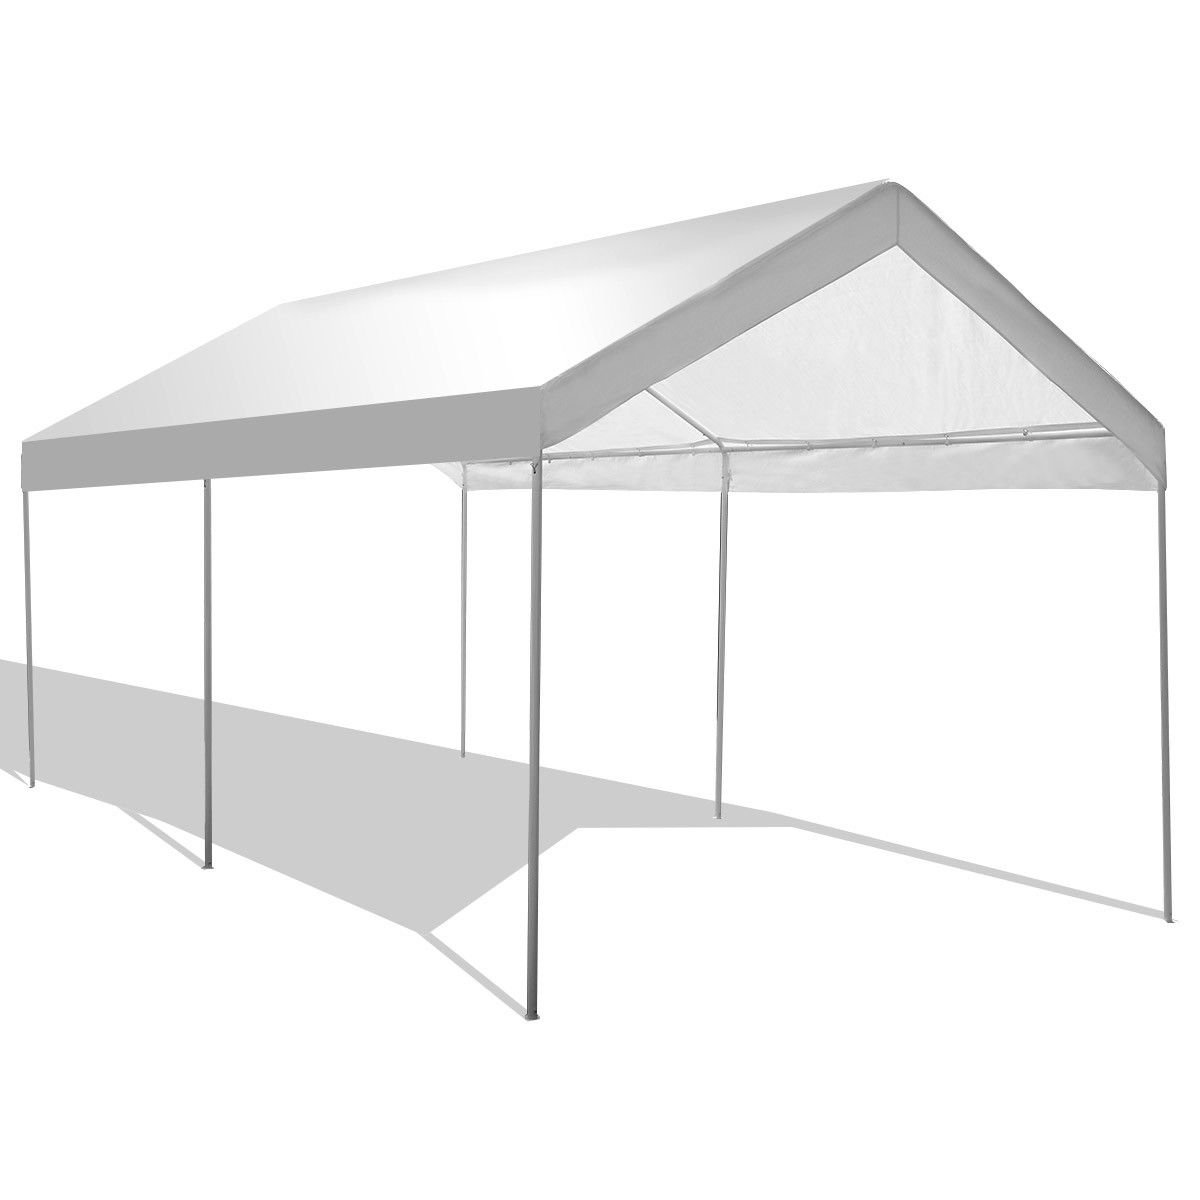 Tangkula Carport 10 x 20 Heavy Duty Portable Car Canopy All-Purpose Water-Resistant Carport Outdoor Party Canopy Garage Cover Instant Shelter